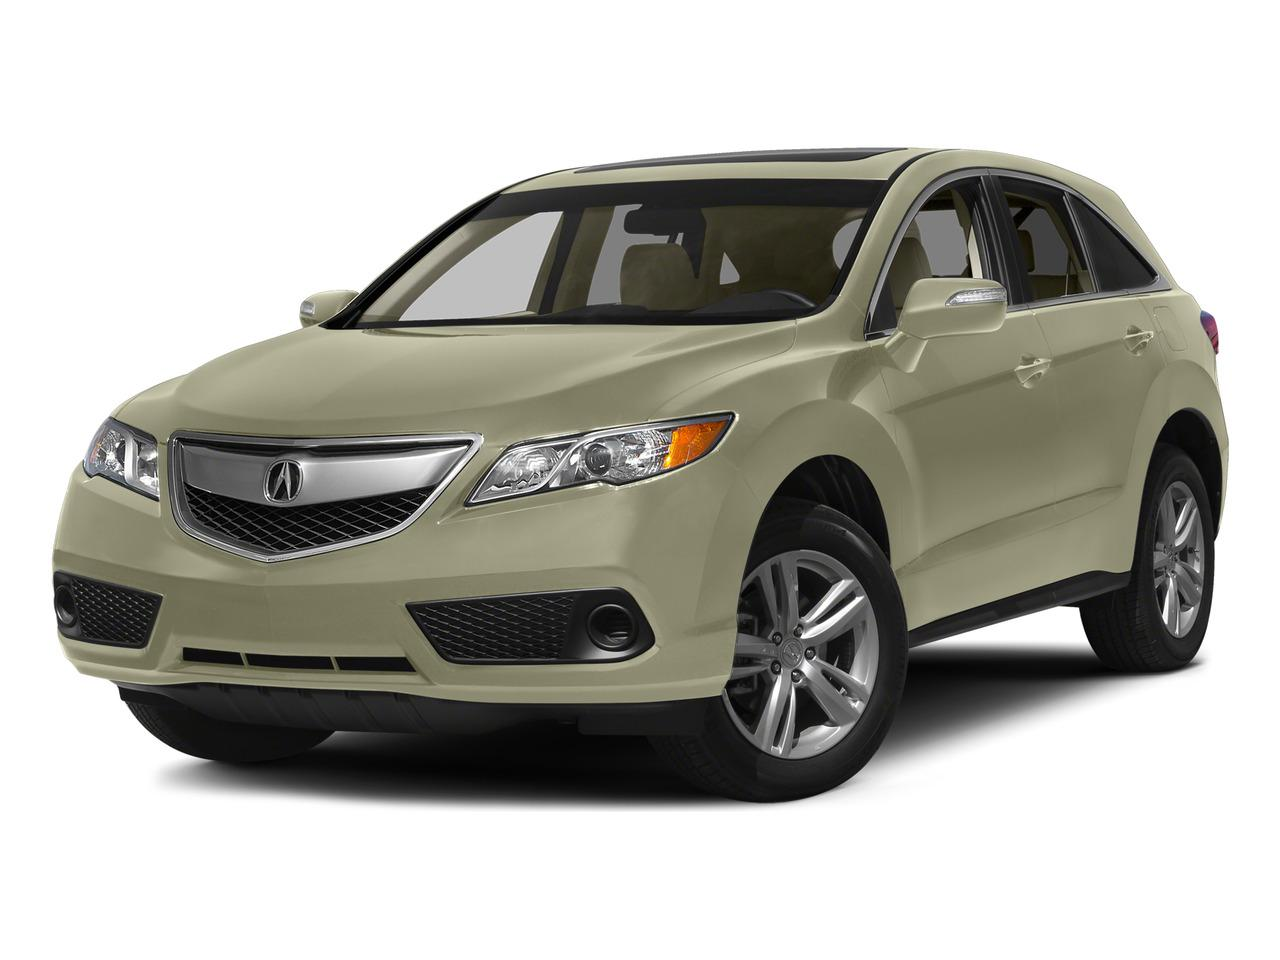 2015 Acura RDX Vehicle Photo in FRANKLIN, TN 37067